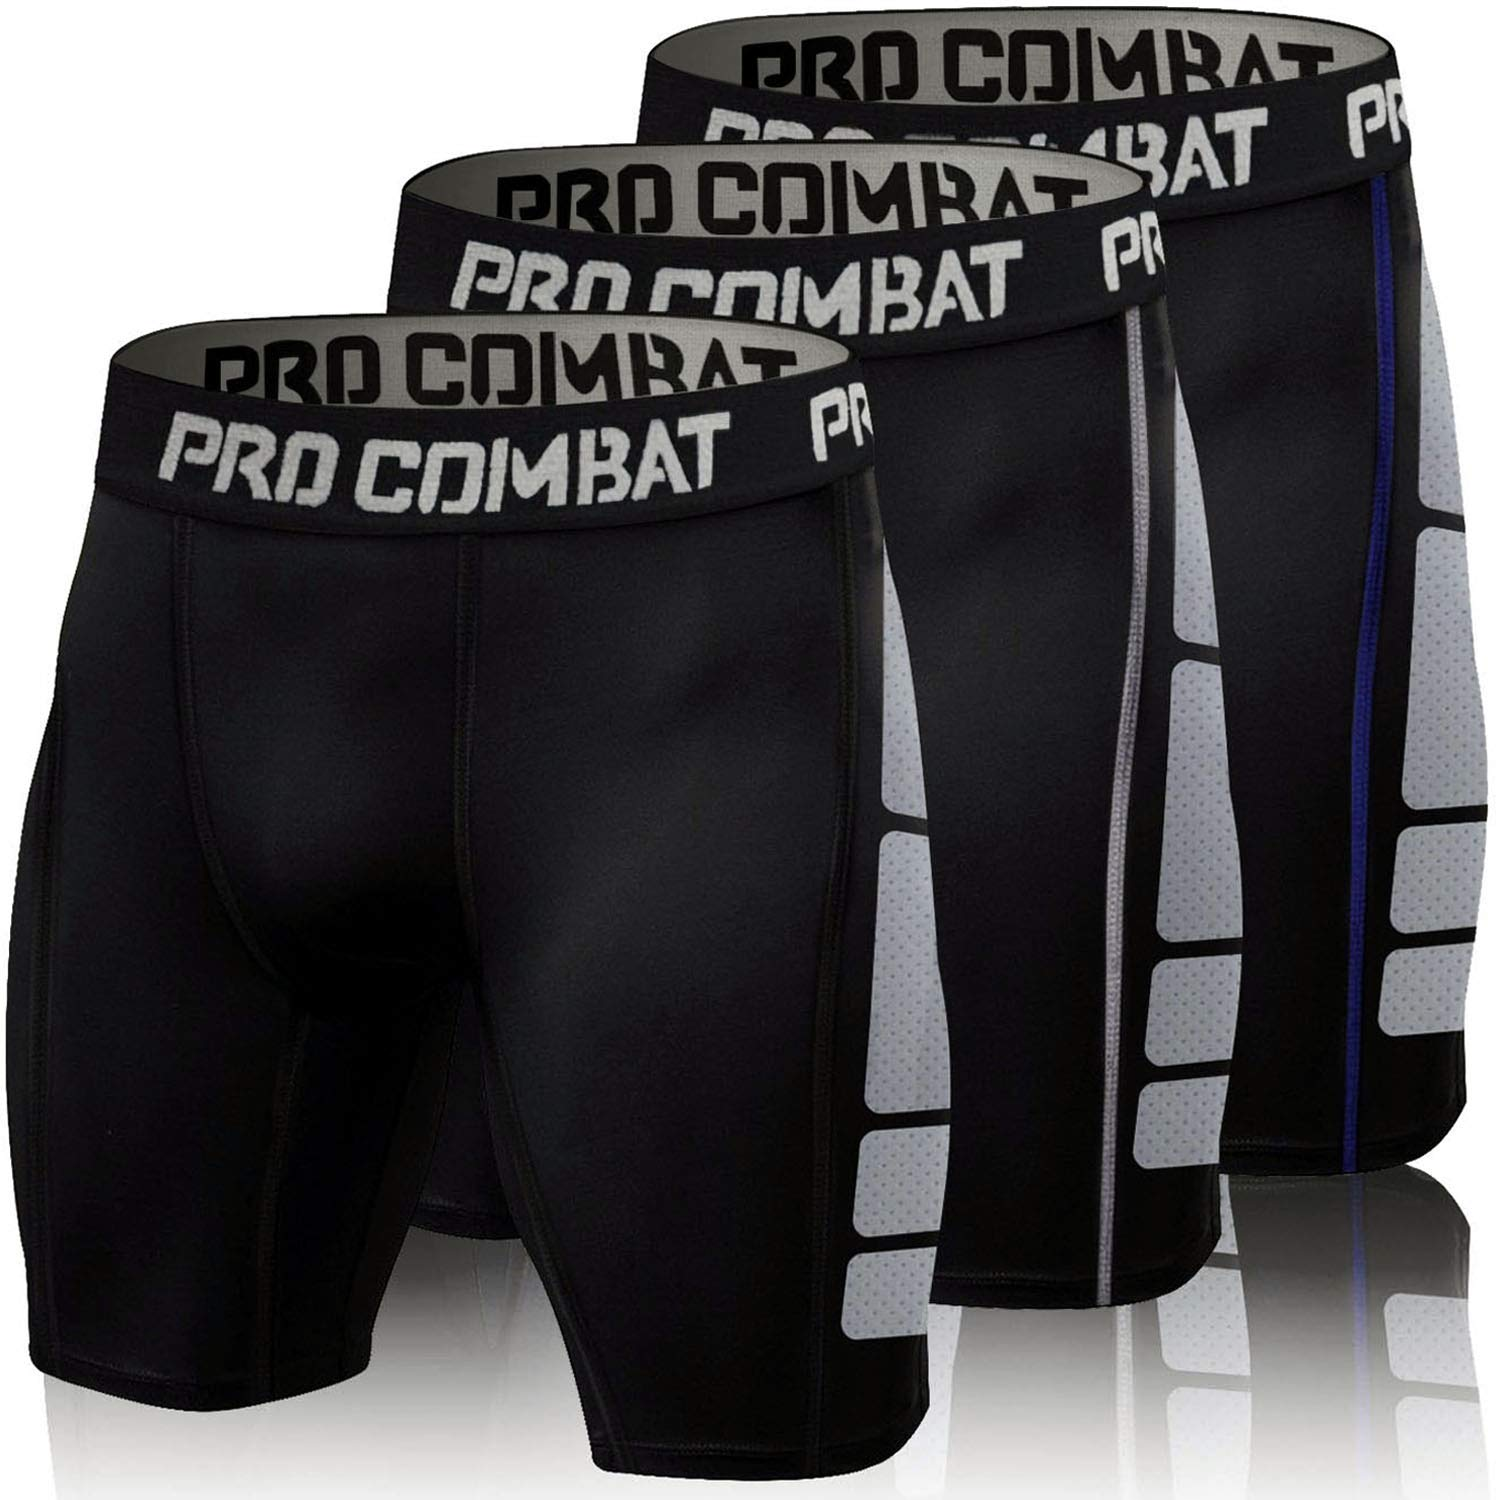 ZMCX Compression Shorts Men 3 Pack Quick Dry Sports Tight Shorts Soft Running Pants for Workouts Gym Training